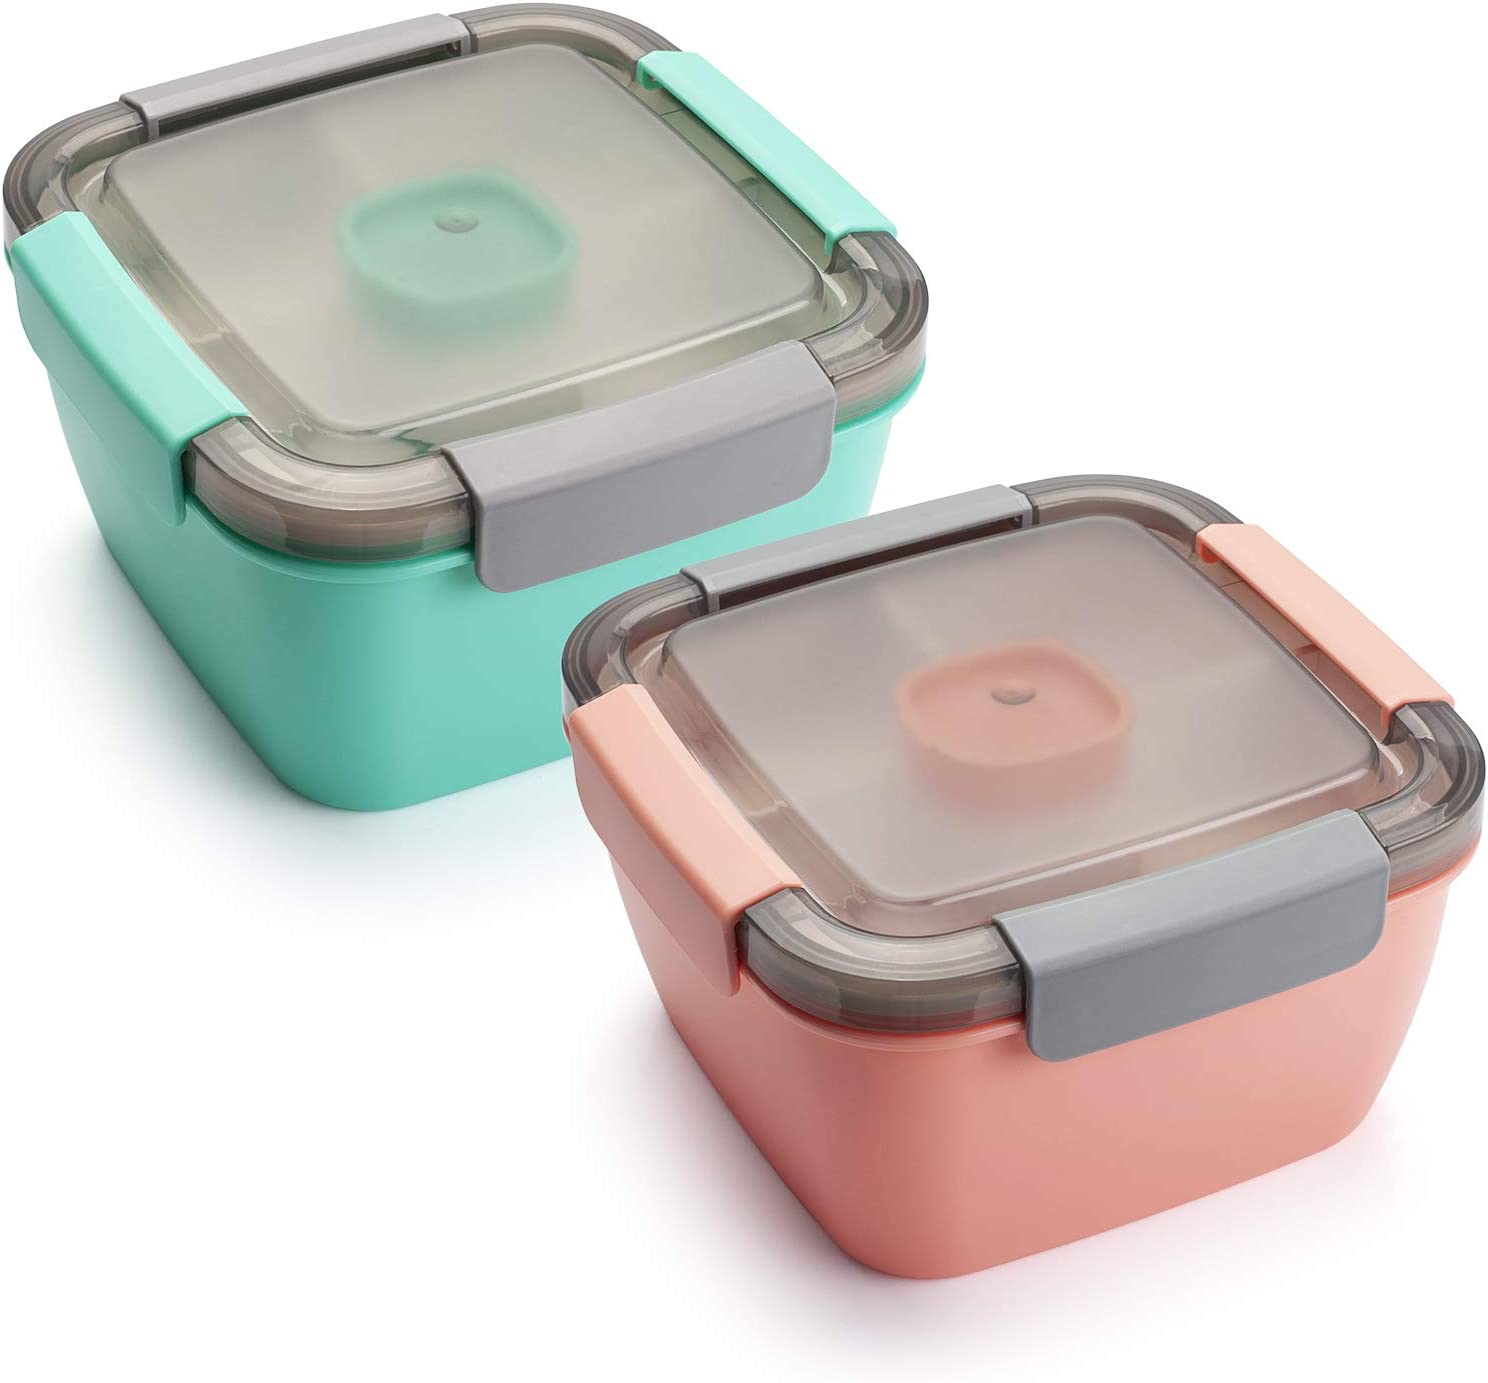 Freshmage Salad Lunch Container To Go, 52-oz Salad Bowls with 3 Compartments, Salad Dressings Container for Salad Toppings, Snacks, Men, Women (Pink+Green)